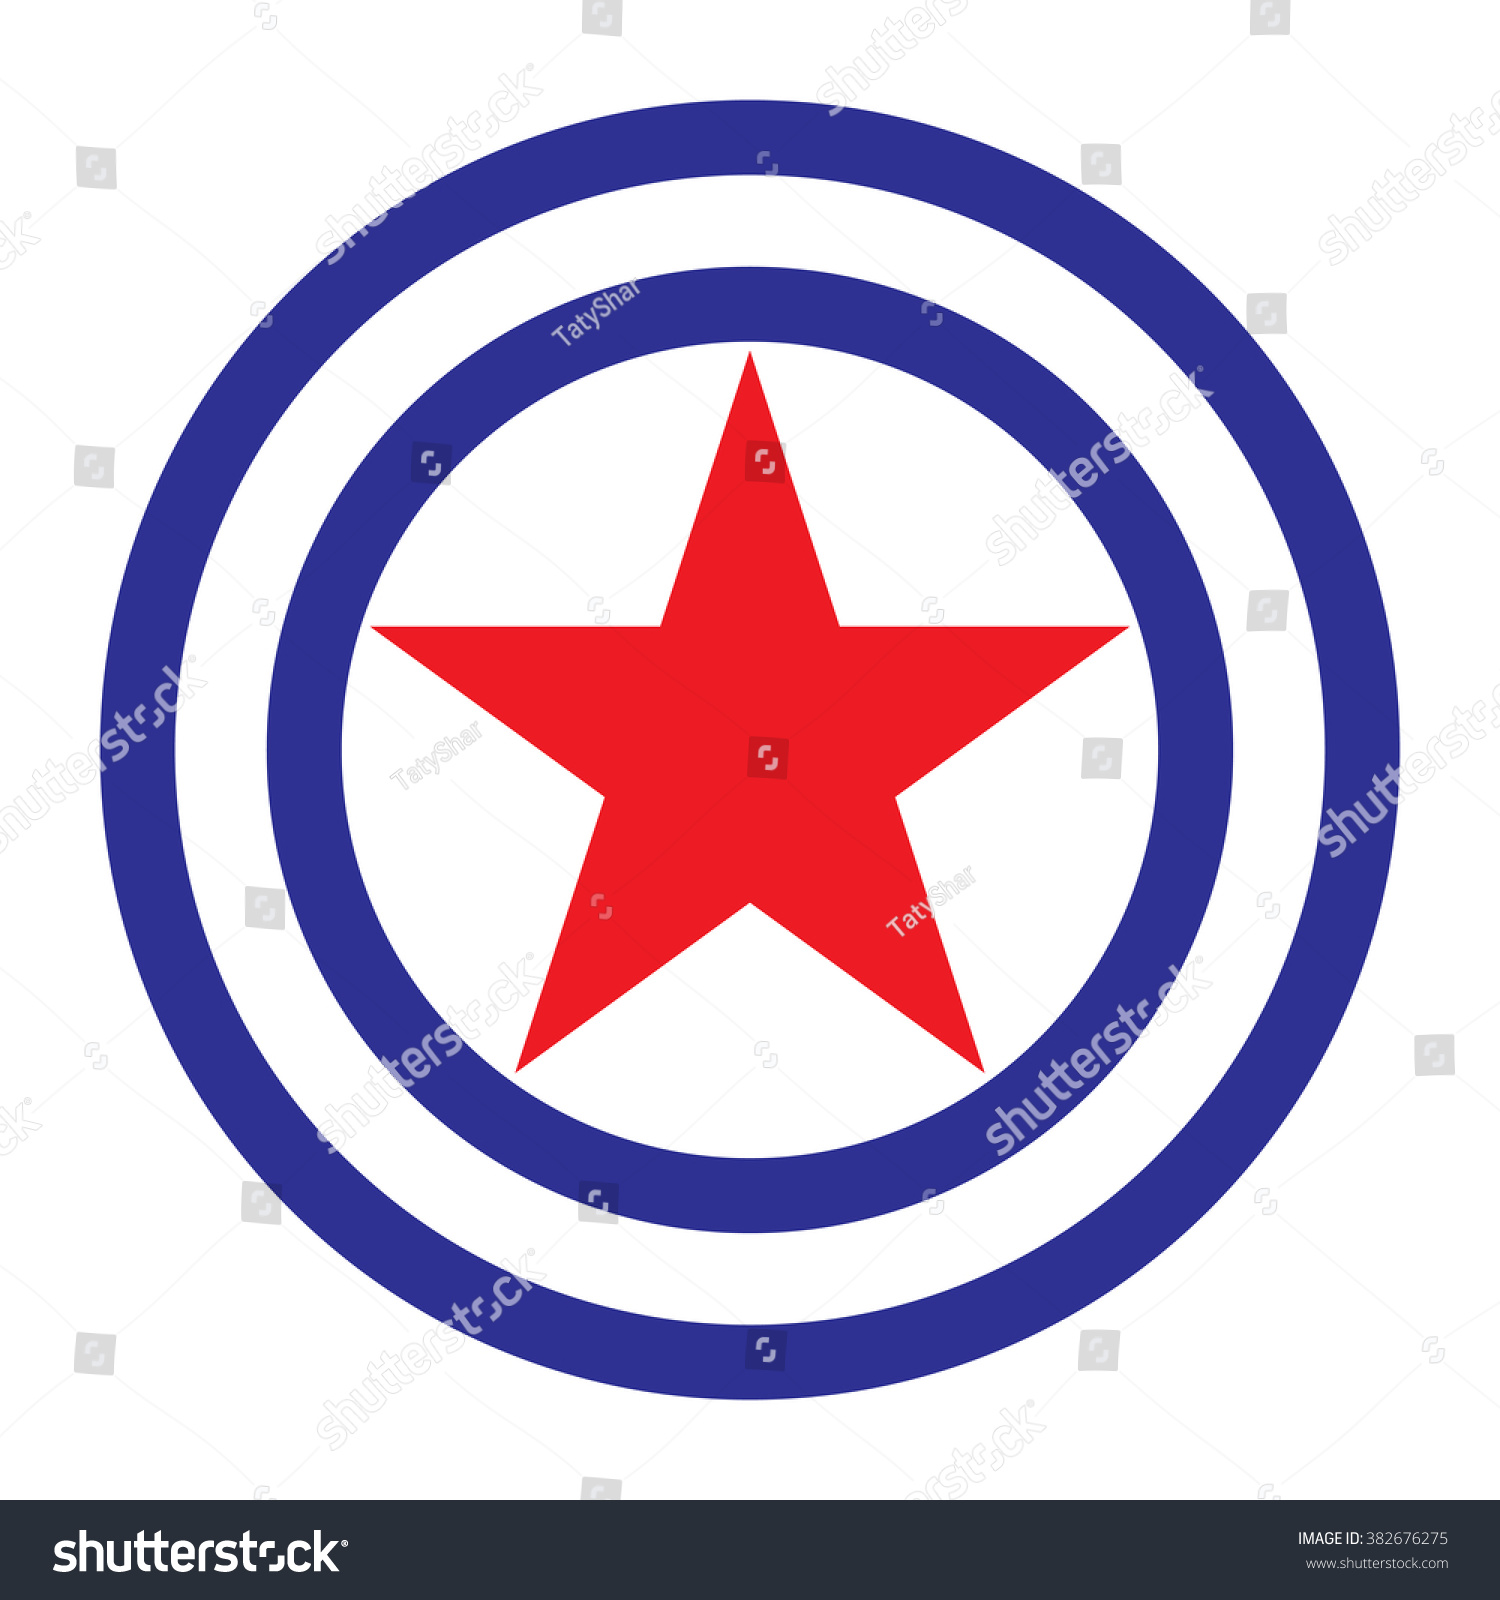 Icon red star circle center blue stock vector 382676275 shutterstock icon red star circle center a blue symbol biocorpaavc Choice Image